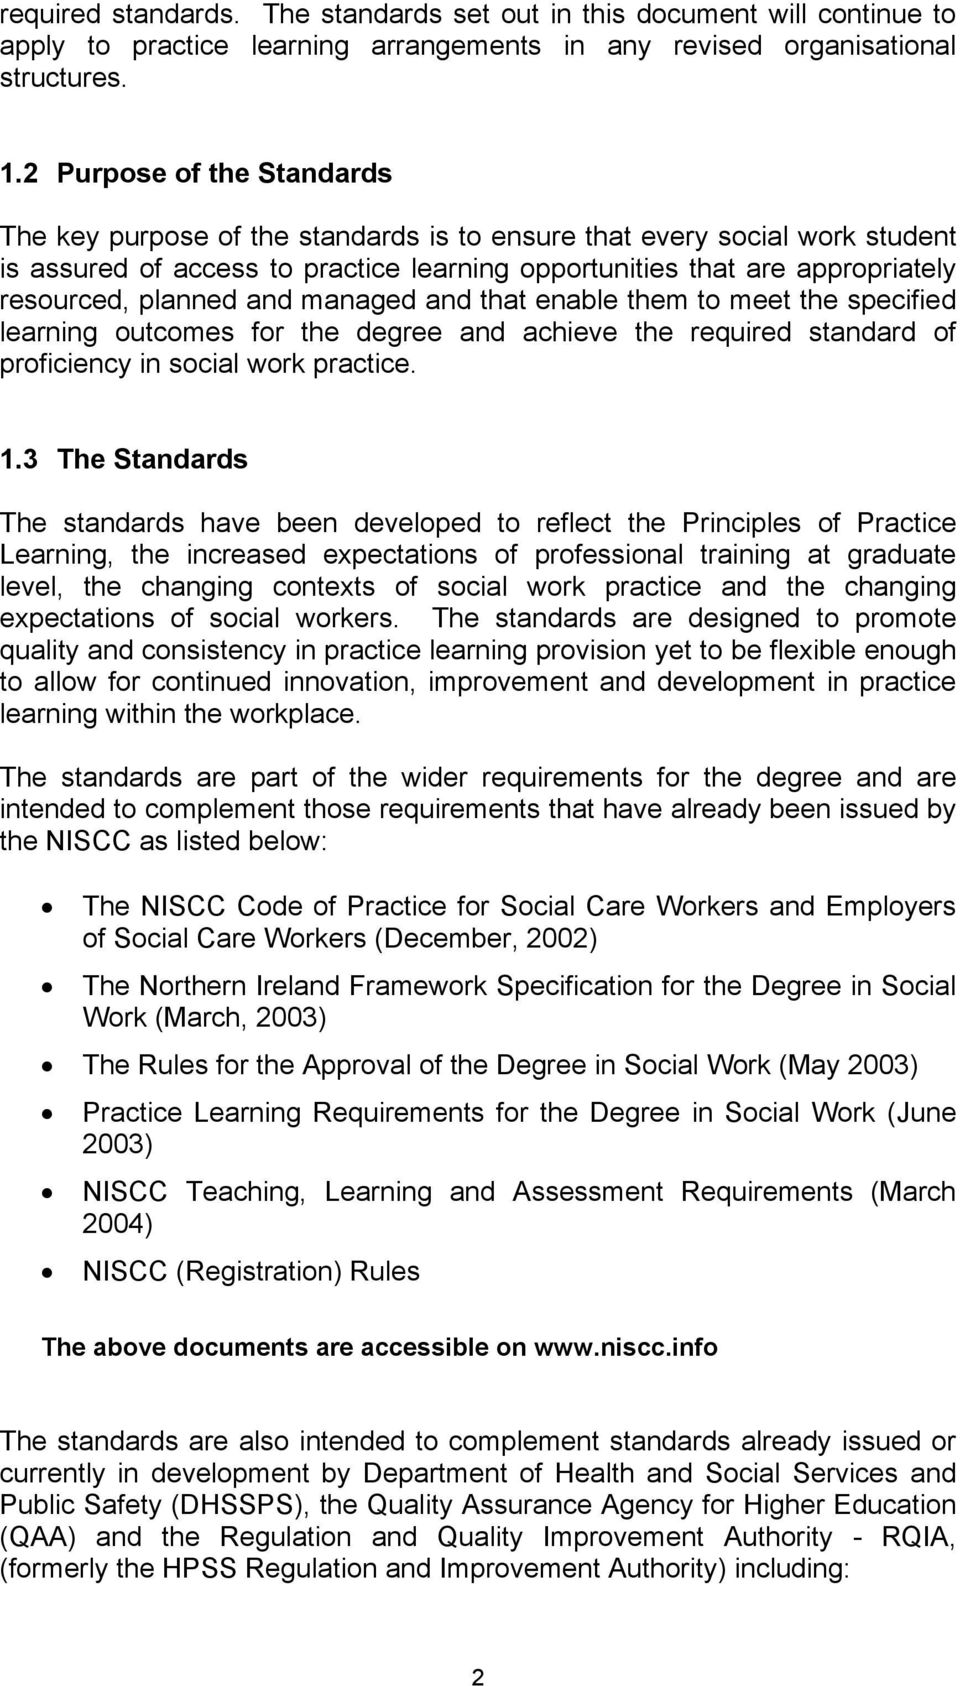 planned and managed and that enable them to meet the specified learning outcomes for the degree and achieve the required standard of proficiency in social work practice. 1.